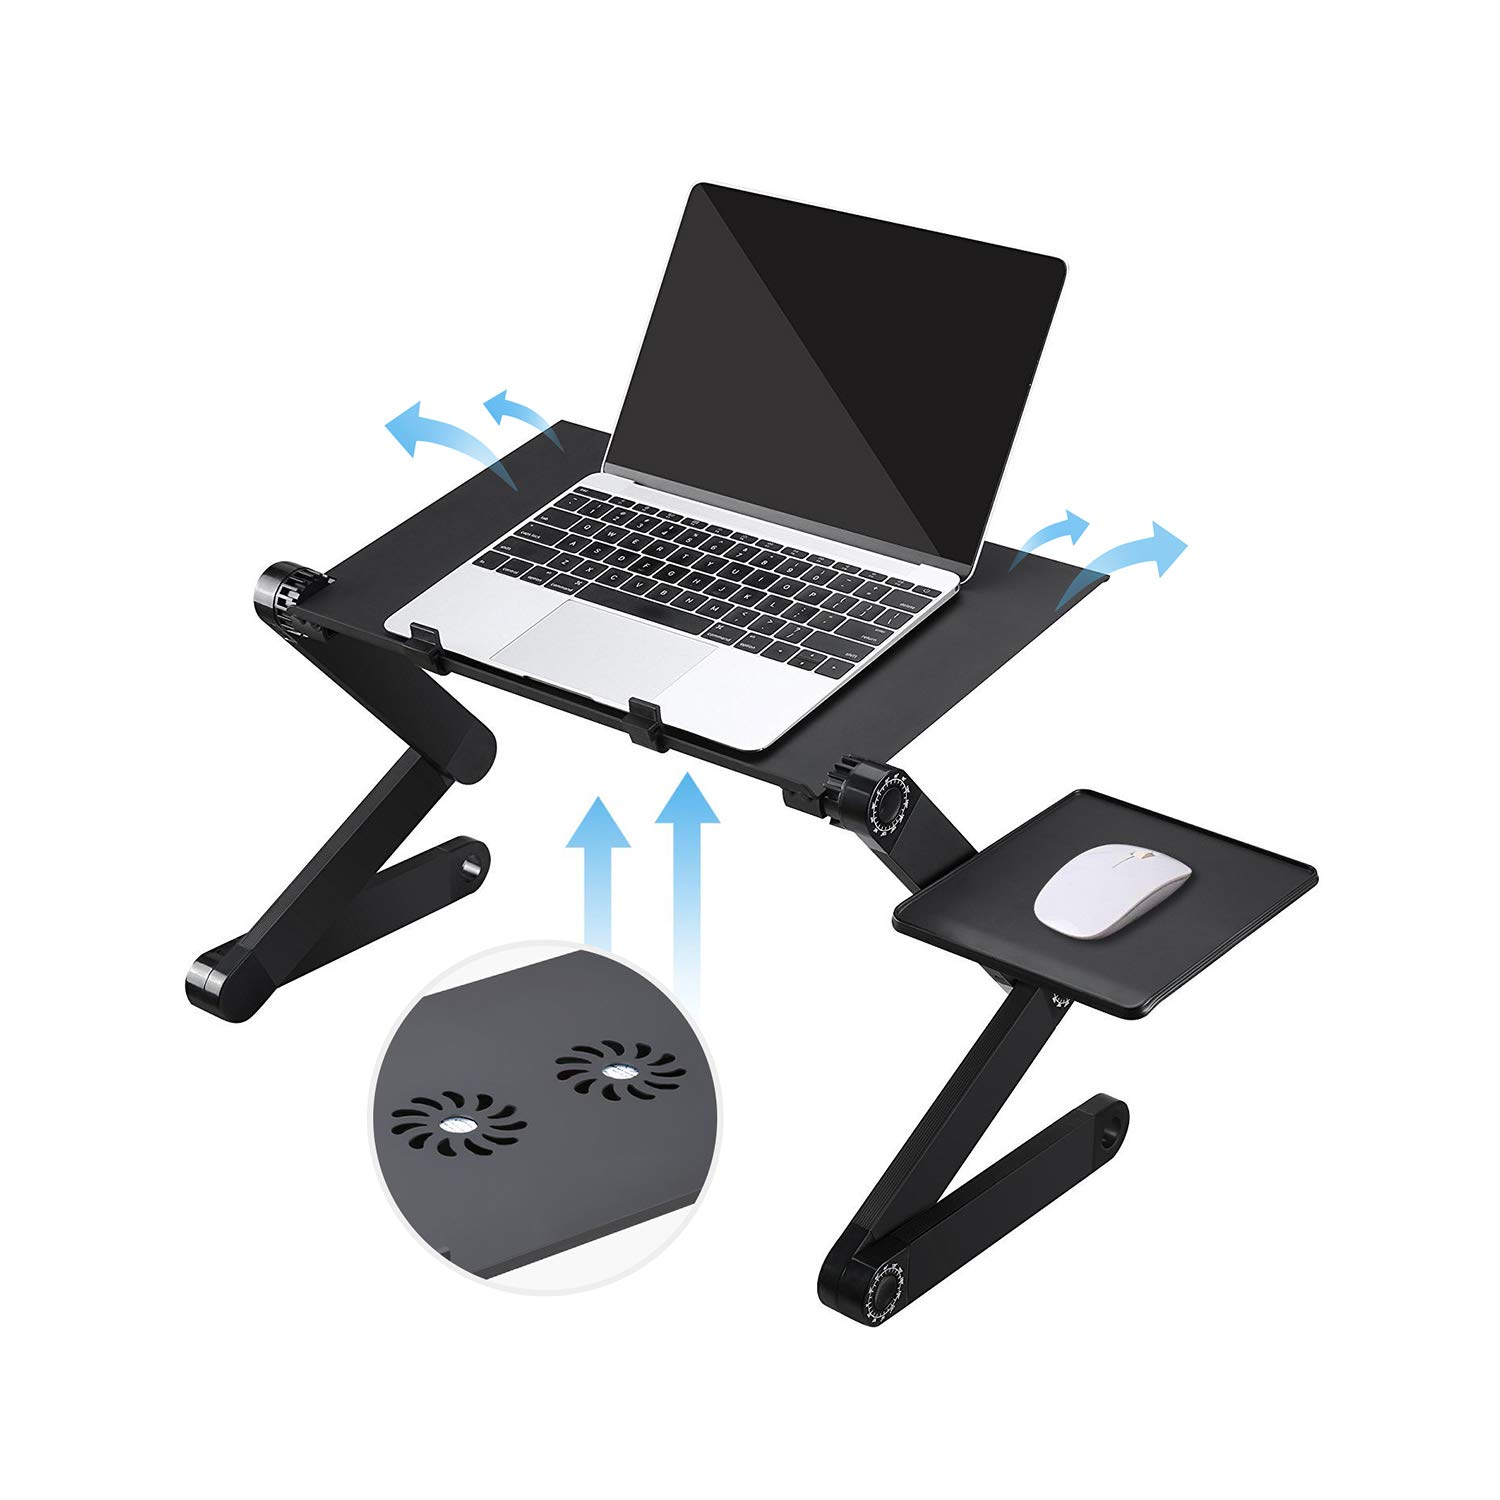 Laptop Desk with Fan, Laptop Stand for Bed and Sofa, Portable Adjustable Laptop Stand Table Desk with 2 CPU Cooling Fans and Mouse Pad, Ergonomic Lap TV Bed Tray Aluminum Cozy Desk for Home Office Use